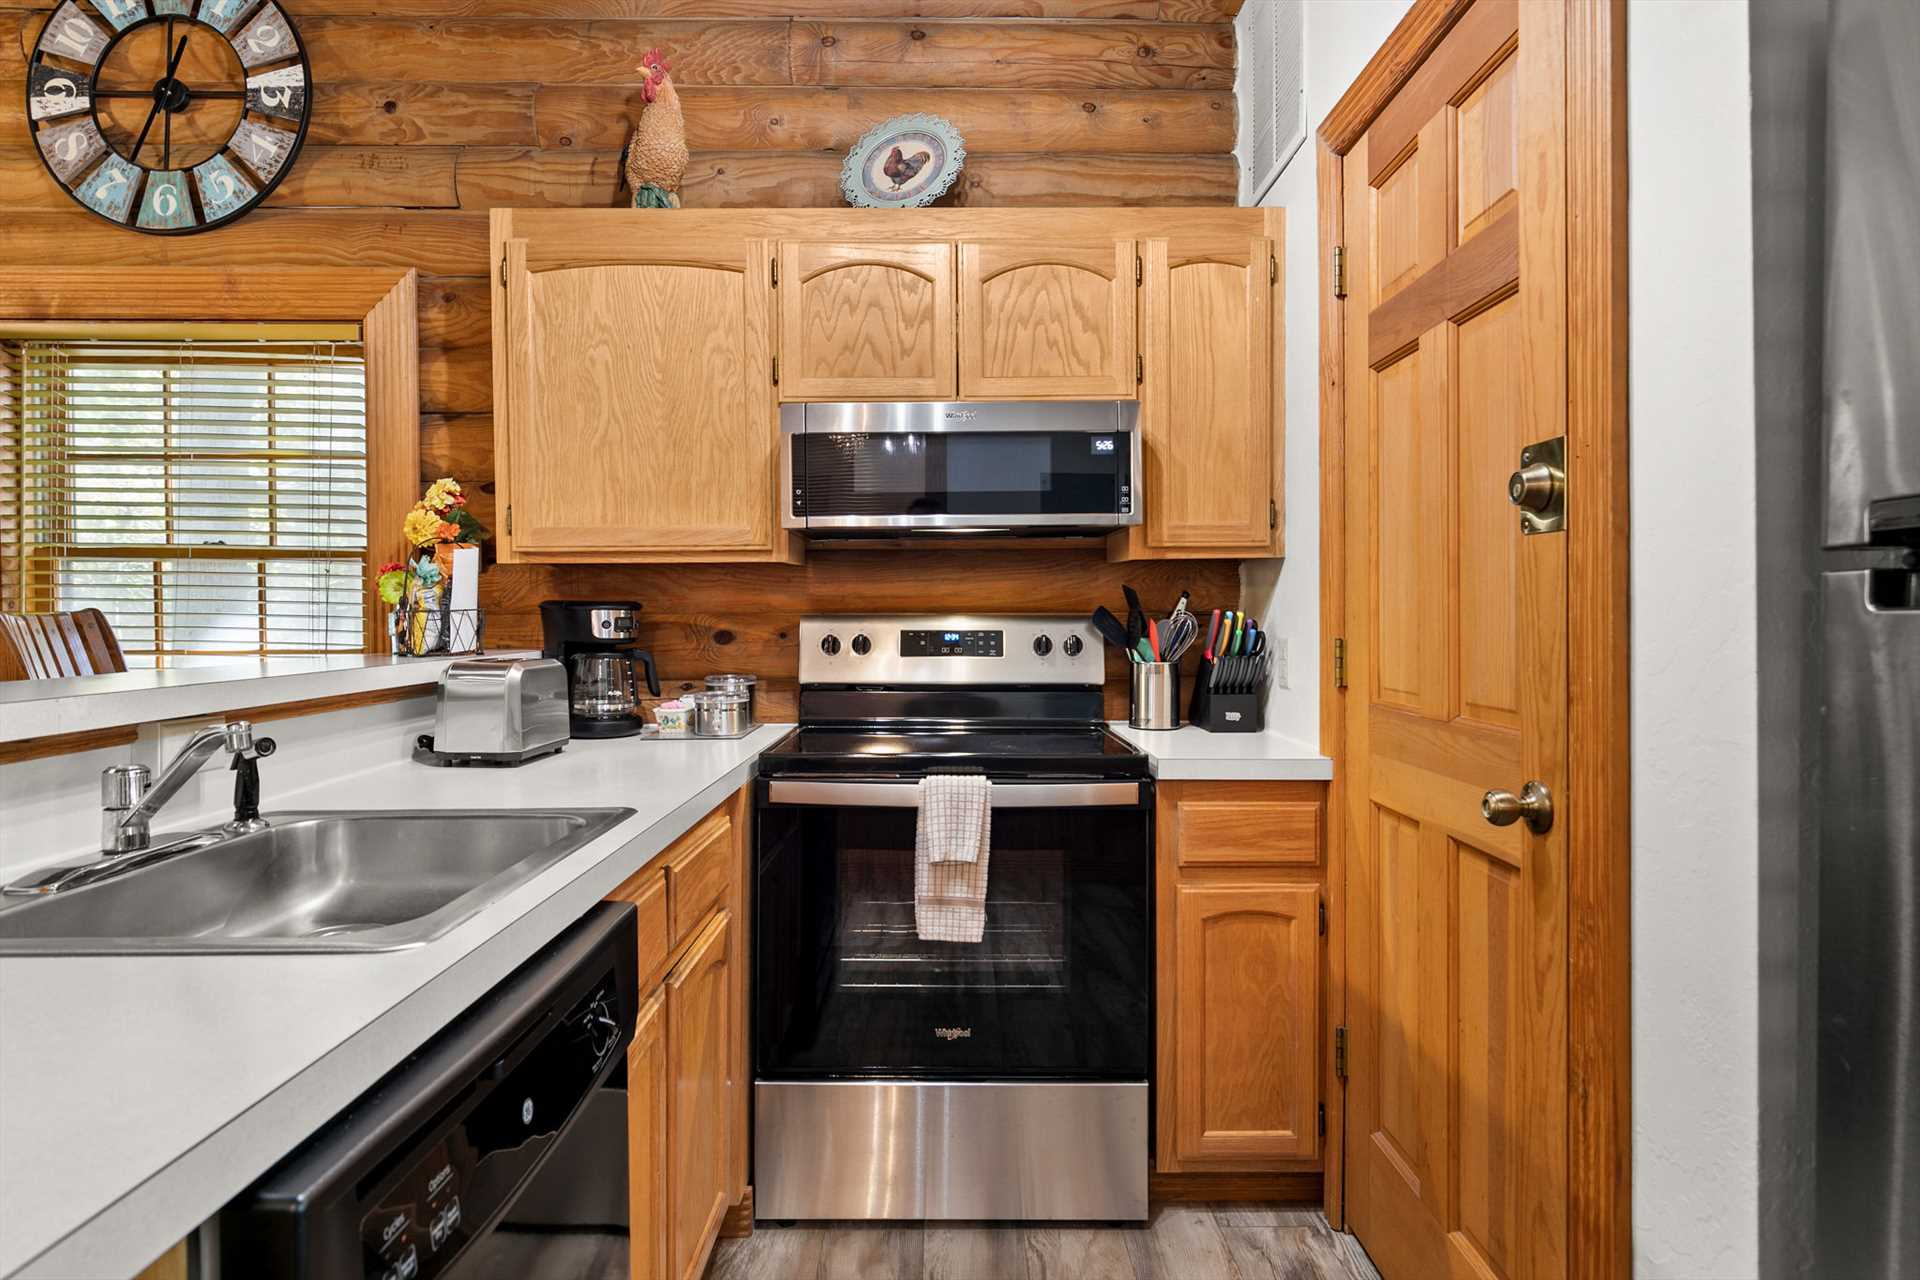 All of the appliances in this cabin have been updated.